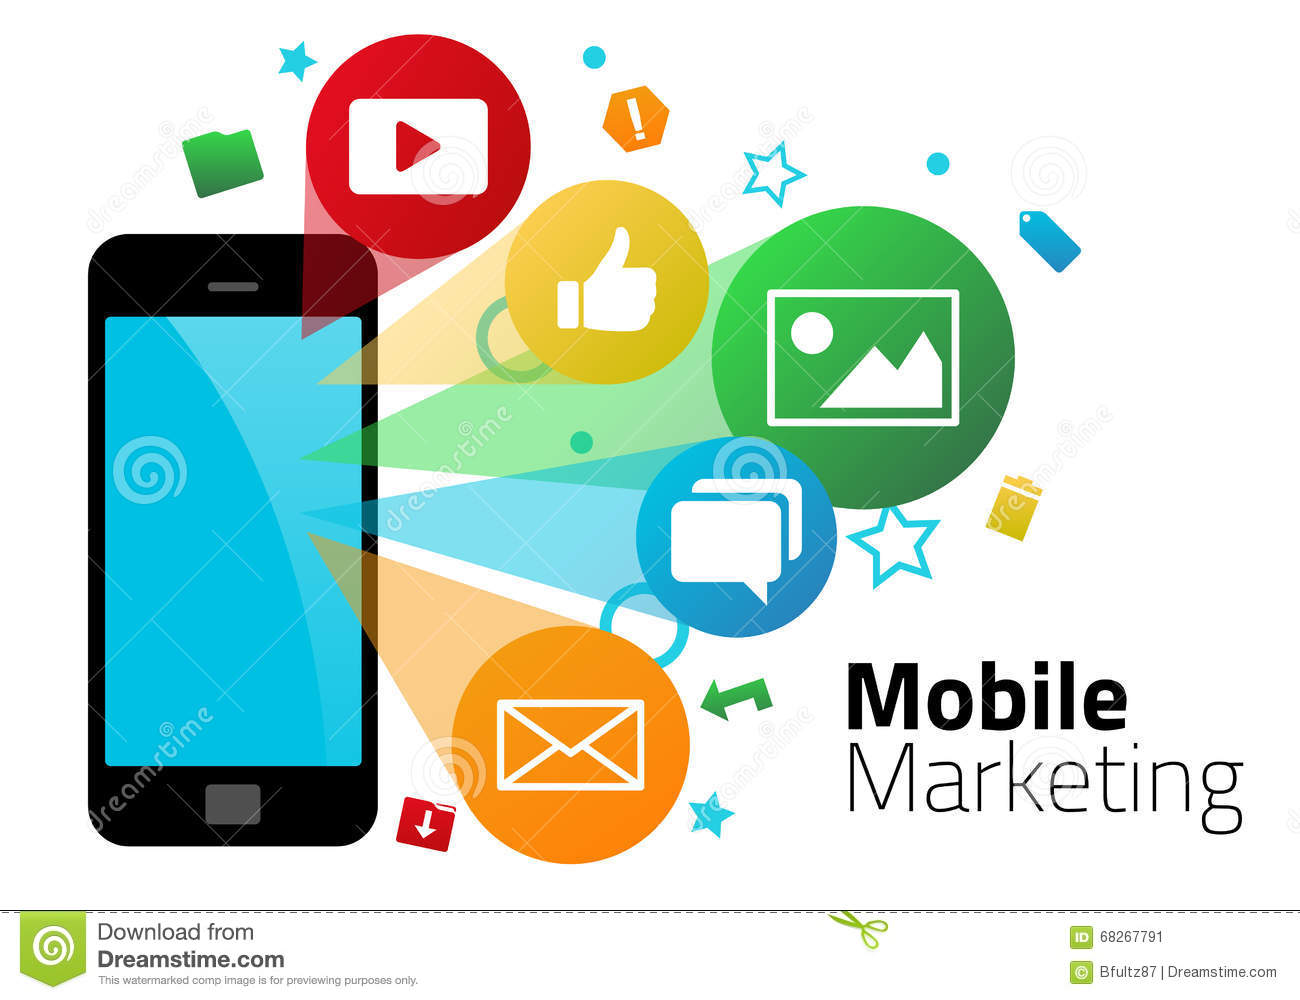 mobile-marketing-graphics-text-smartphone-illustrated-social-media-apps-68267791.jpg